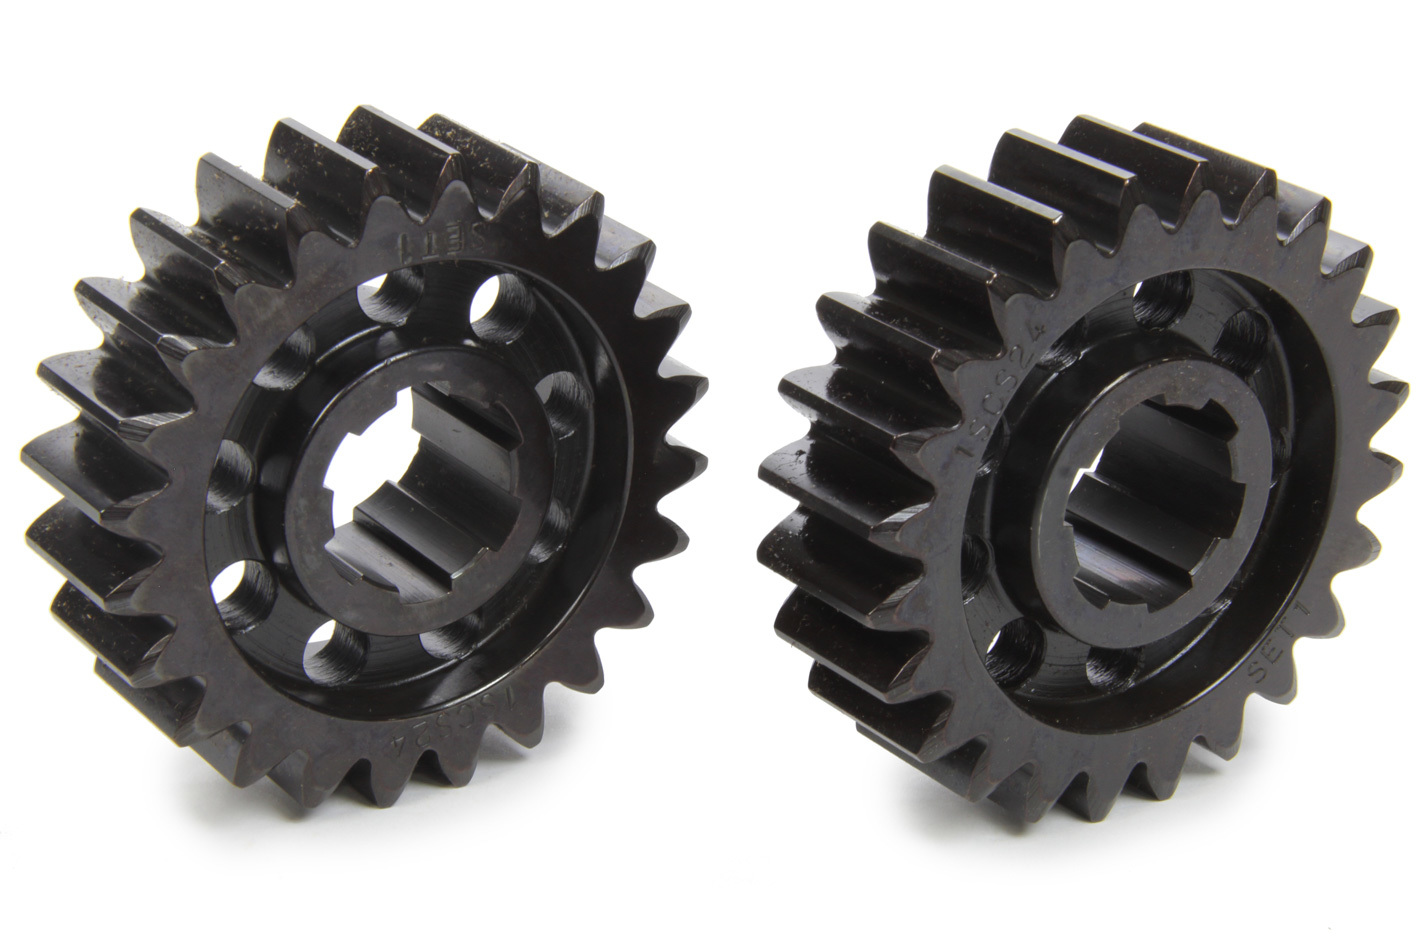 SCS Gears 61 Quick Change Gear Set, Professional, Set 61, 6 Spline, 4.11 Ratio 4.11 / 4.11, 4.33 Ratio 4.33 / 4.33, Steel, Each